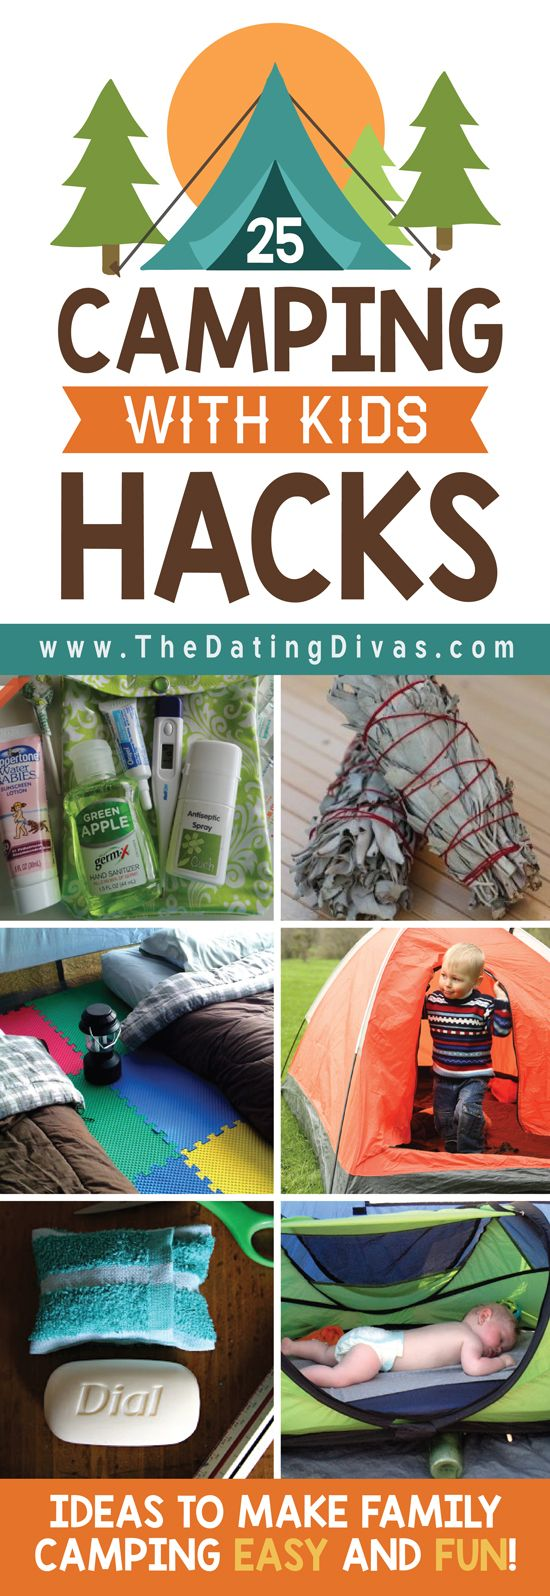 101 camping ideas for kids family camping camping and outdoors